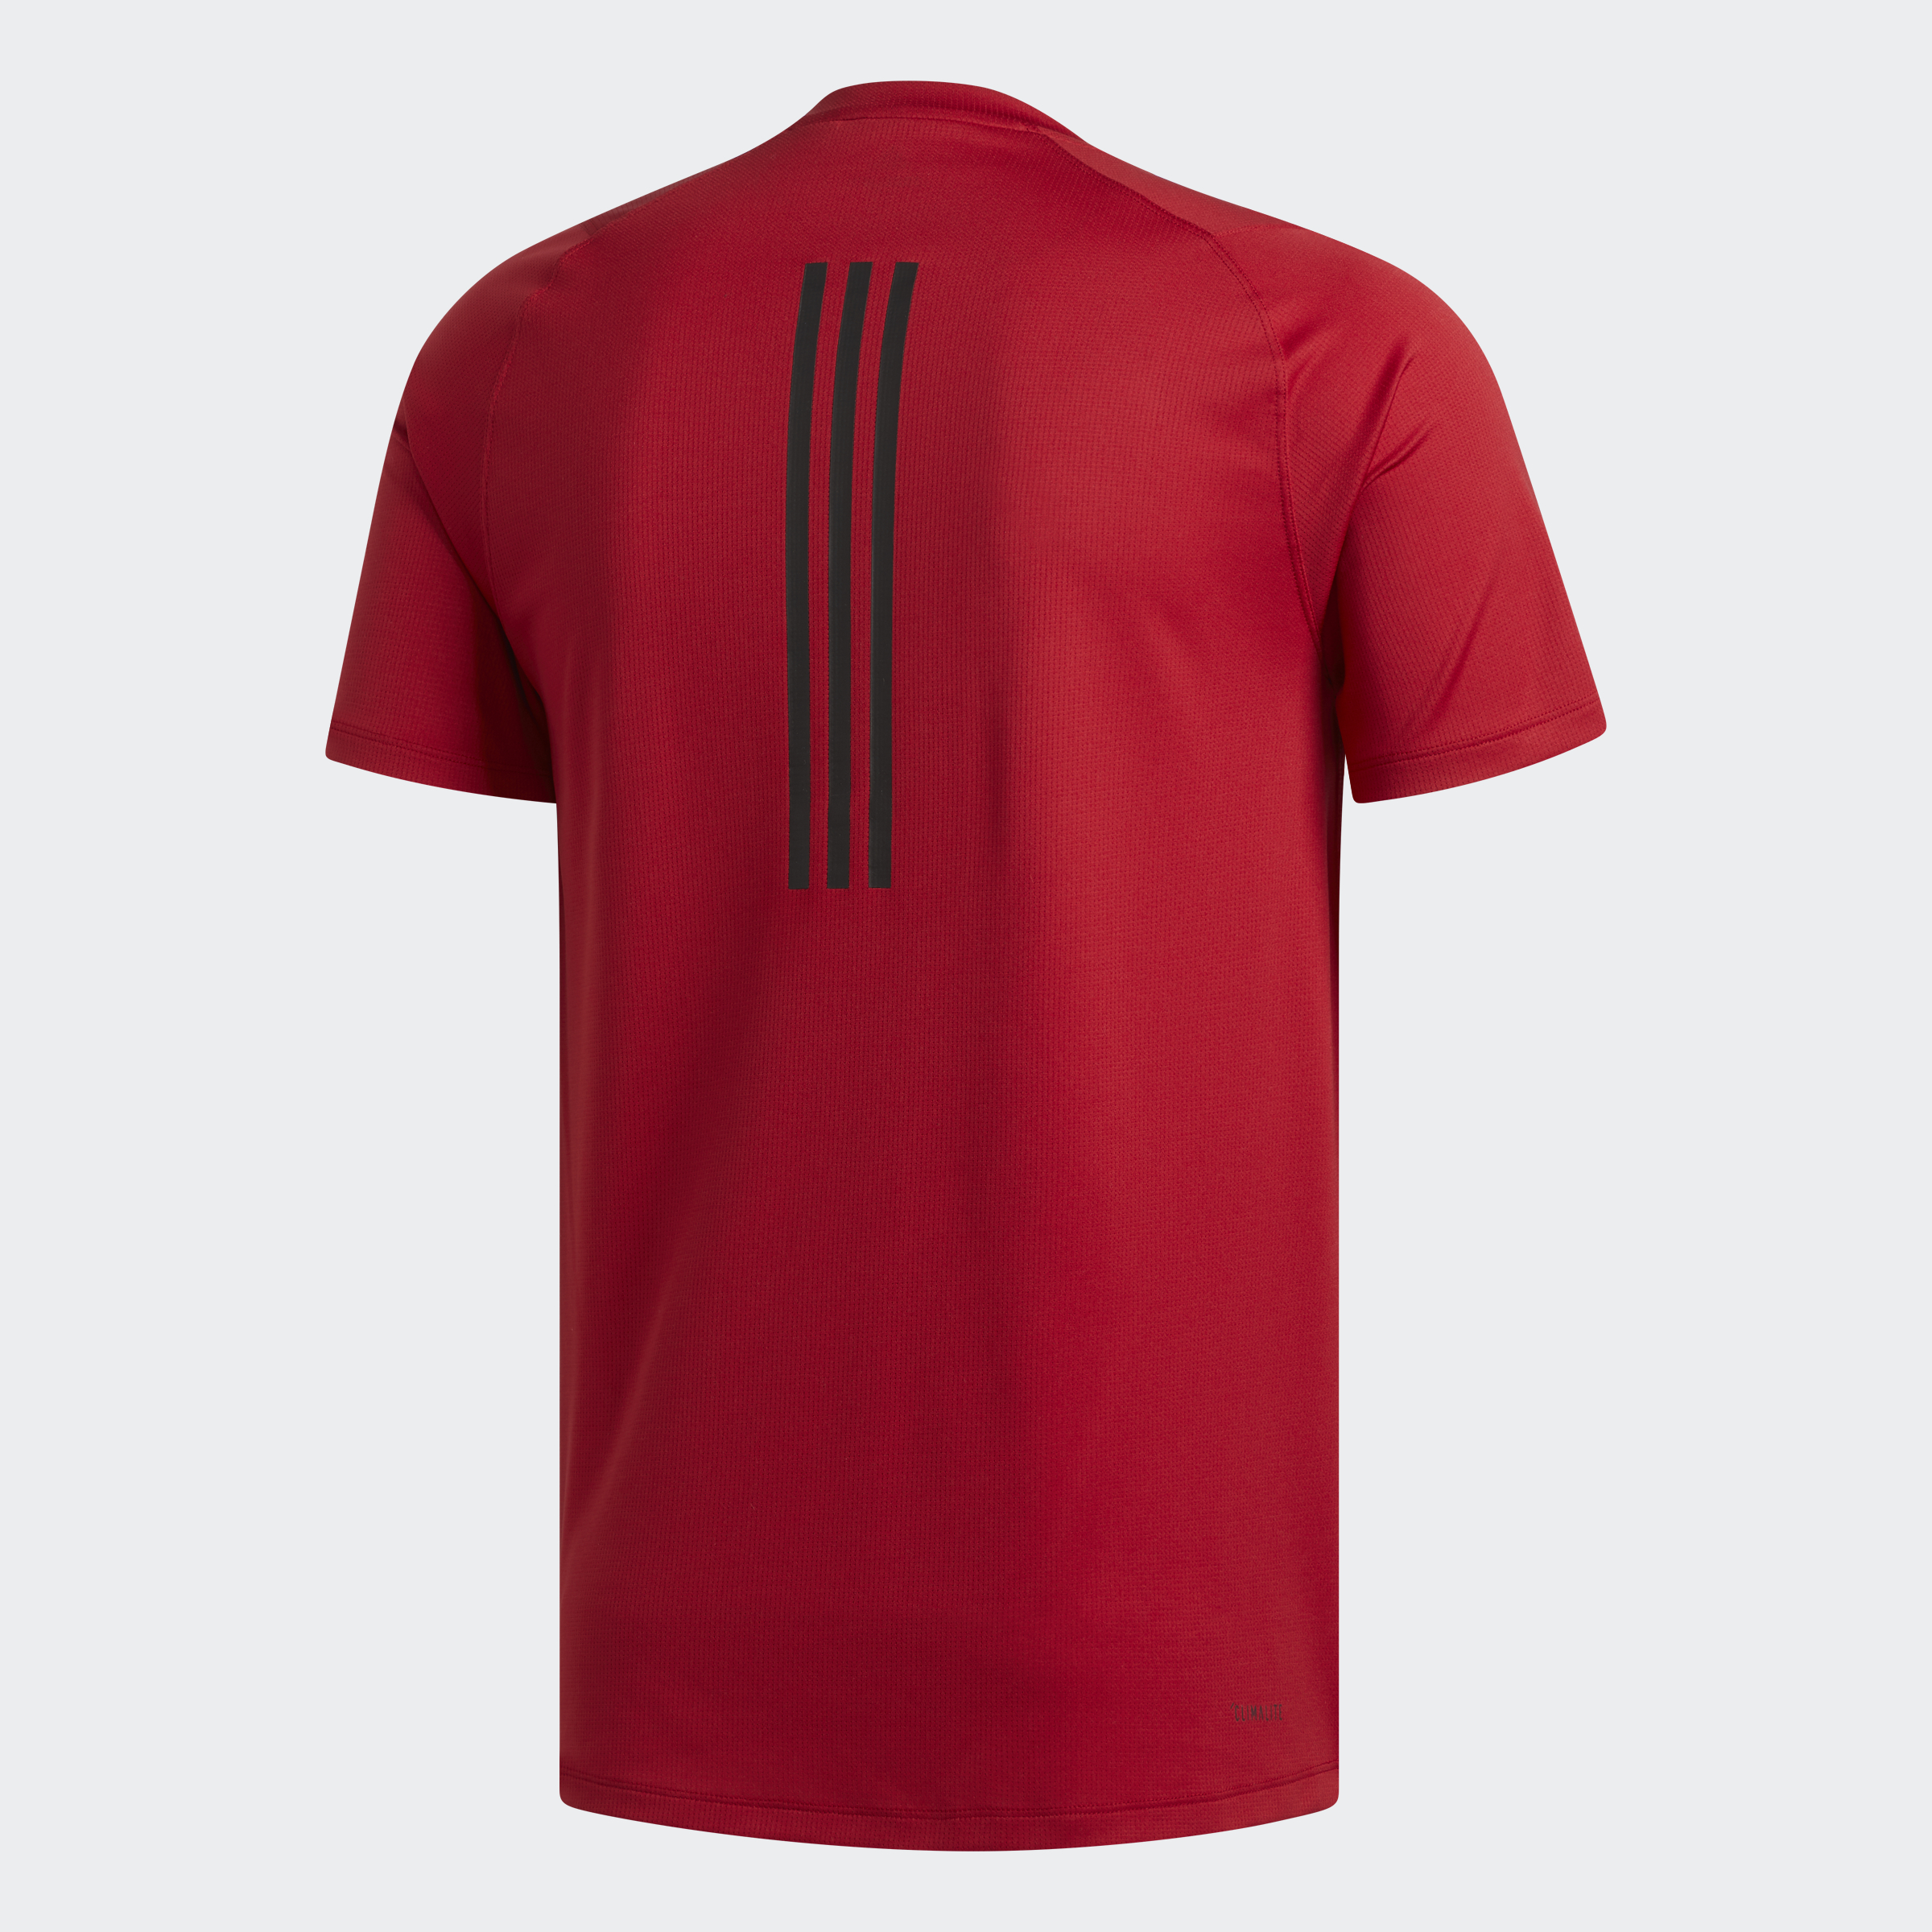 adidas-FreeLift-Sport-Fitted-3-Stripes-Tee-Men-039-s-Shirts miniature 39